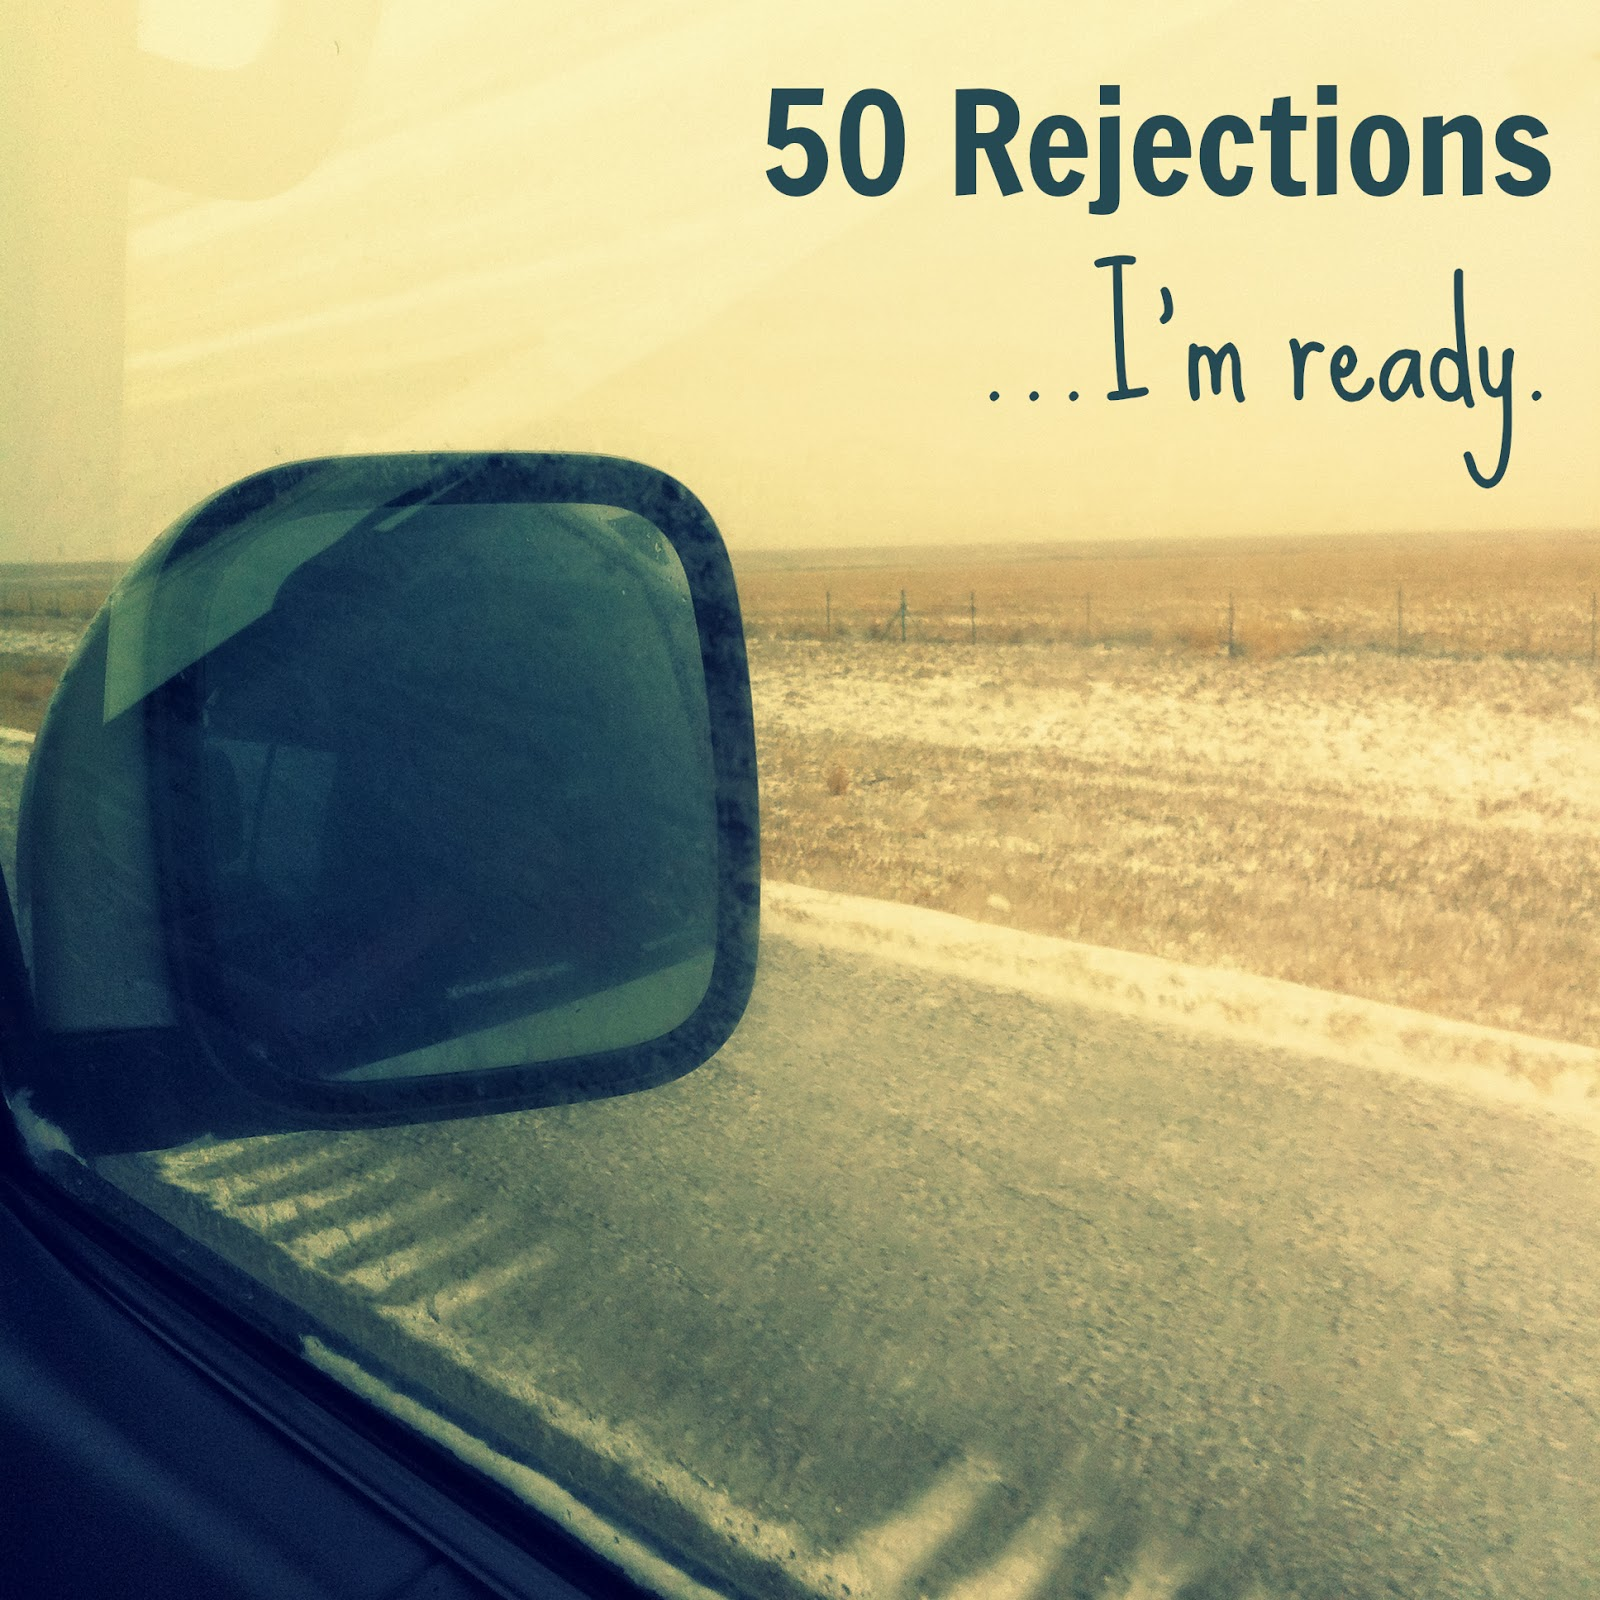 50 rejections